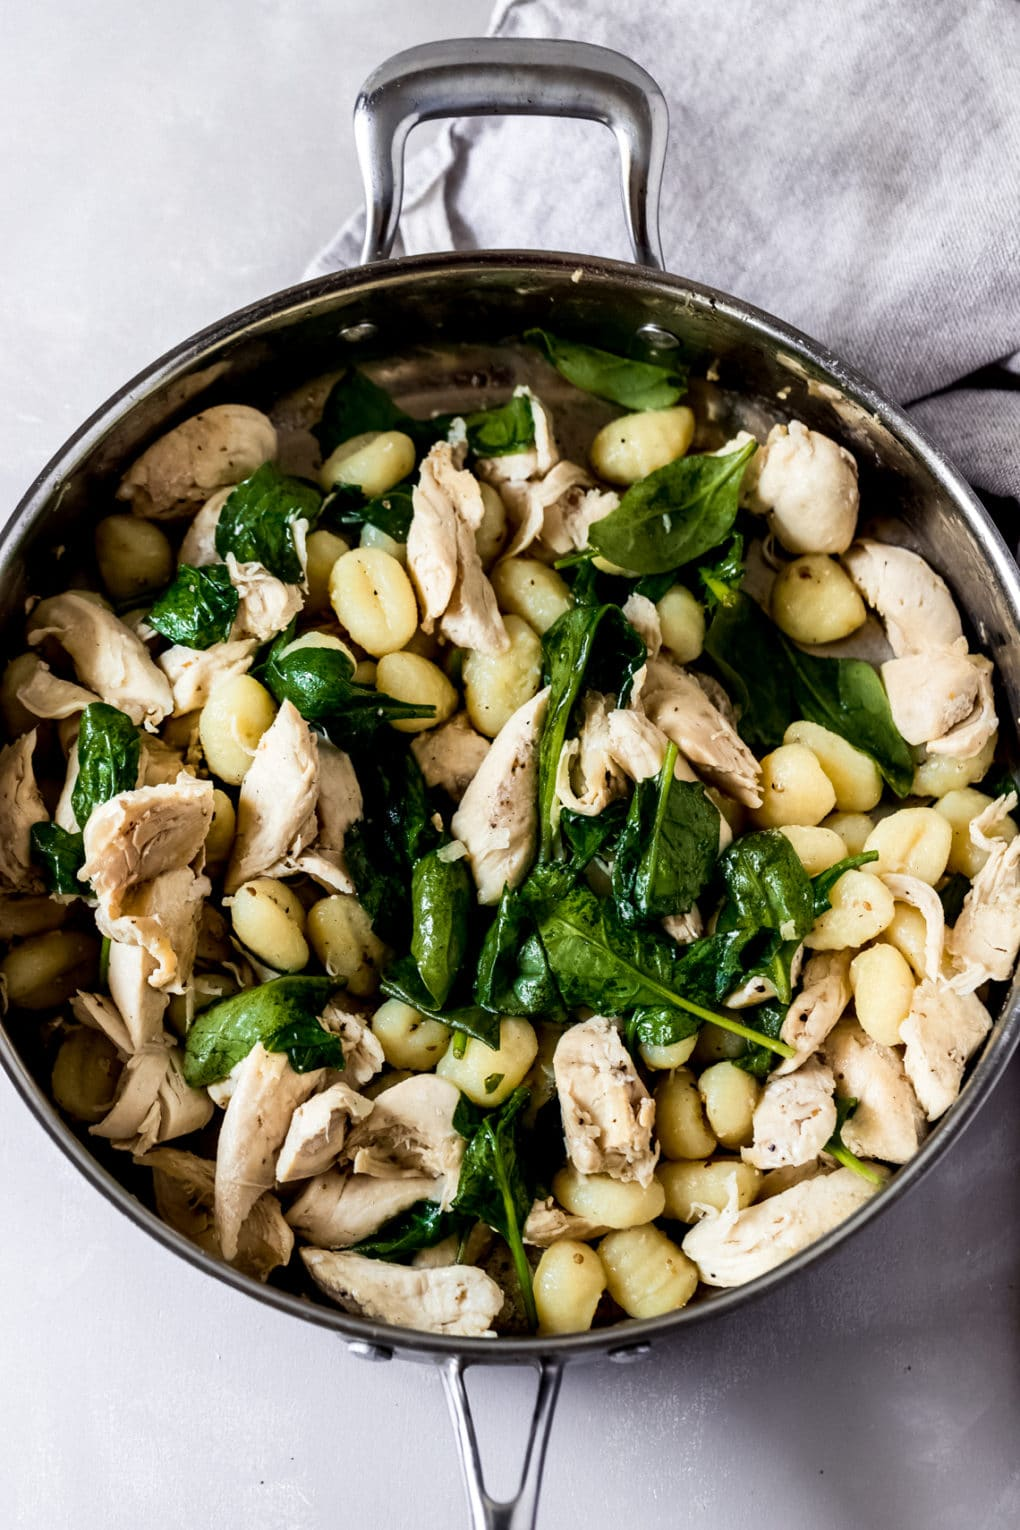 chicken tenders, spinach and gnocchi cooking in a skillet